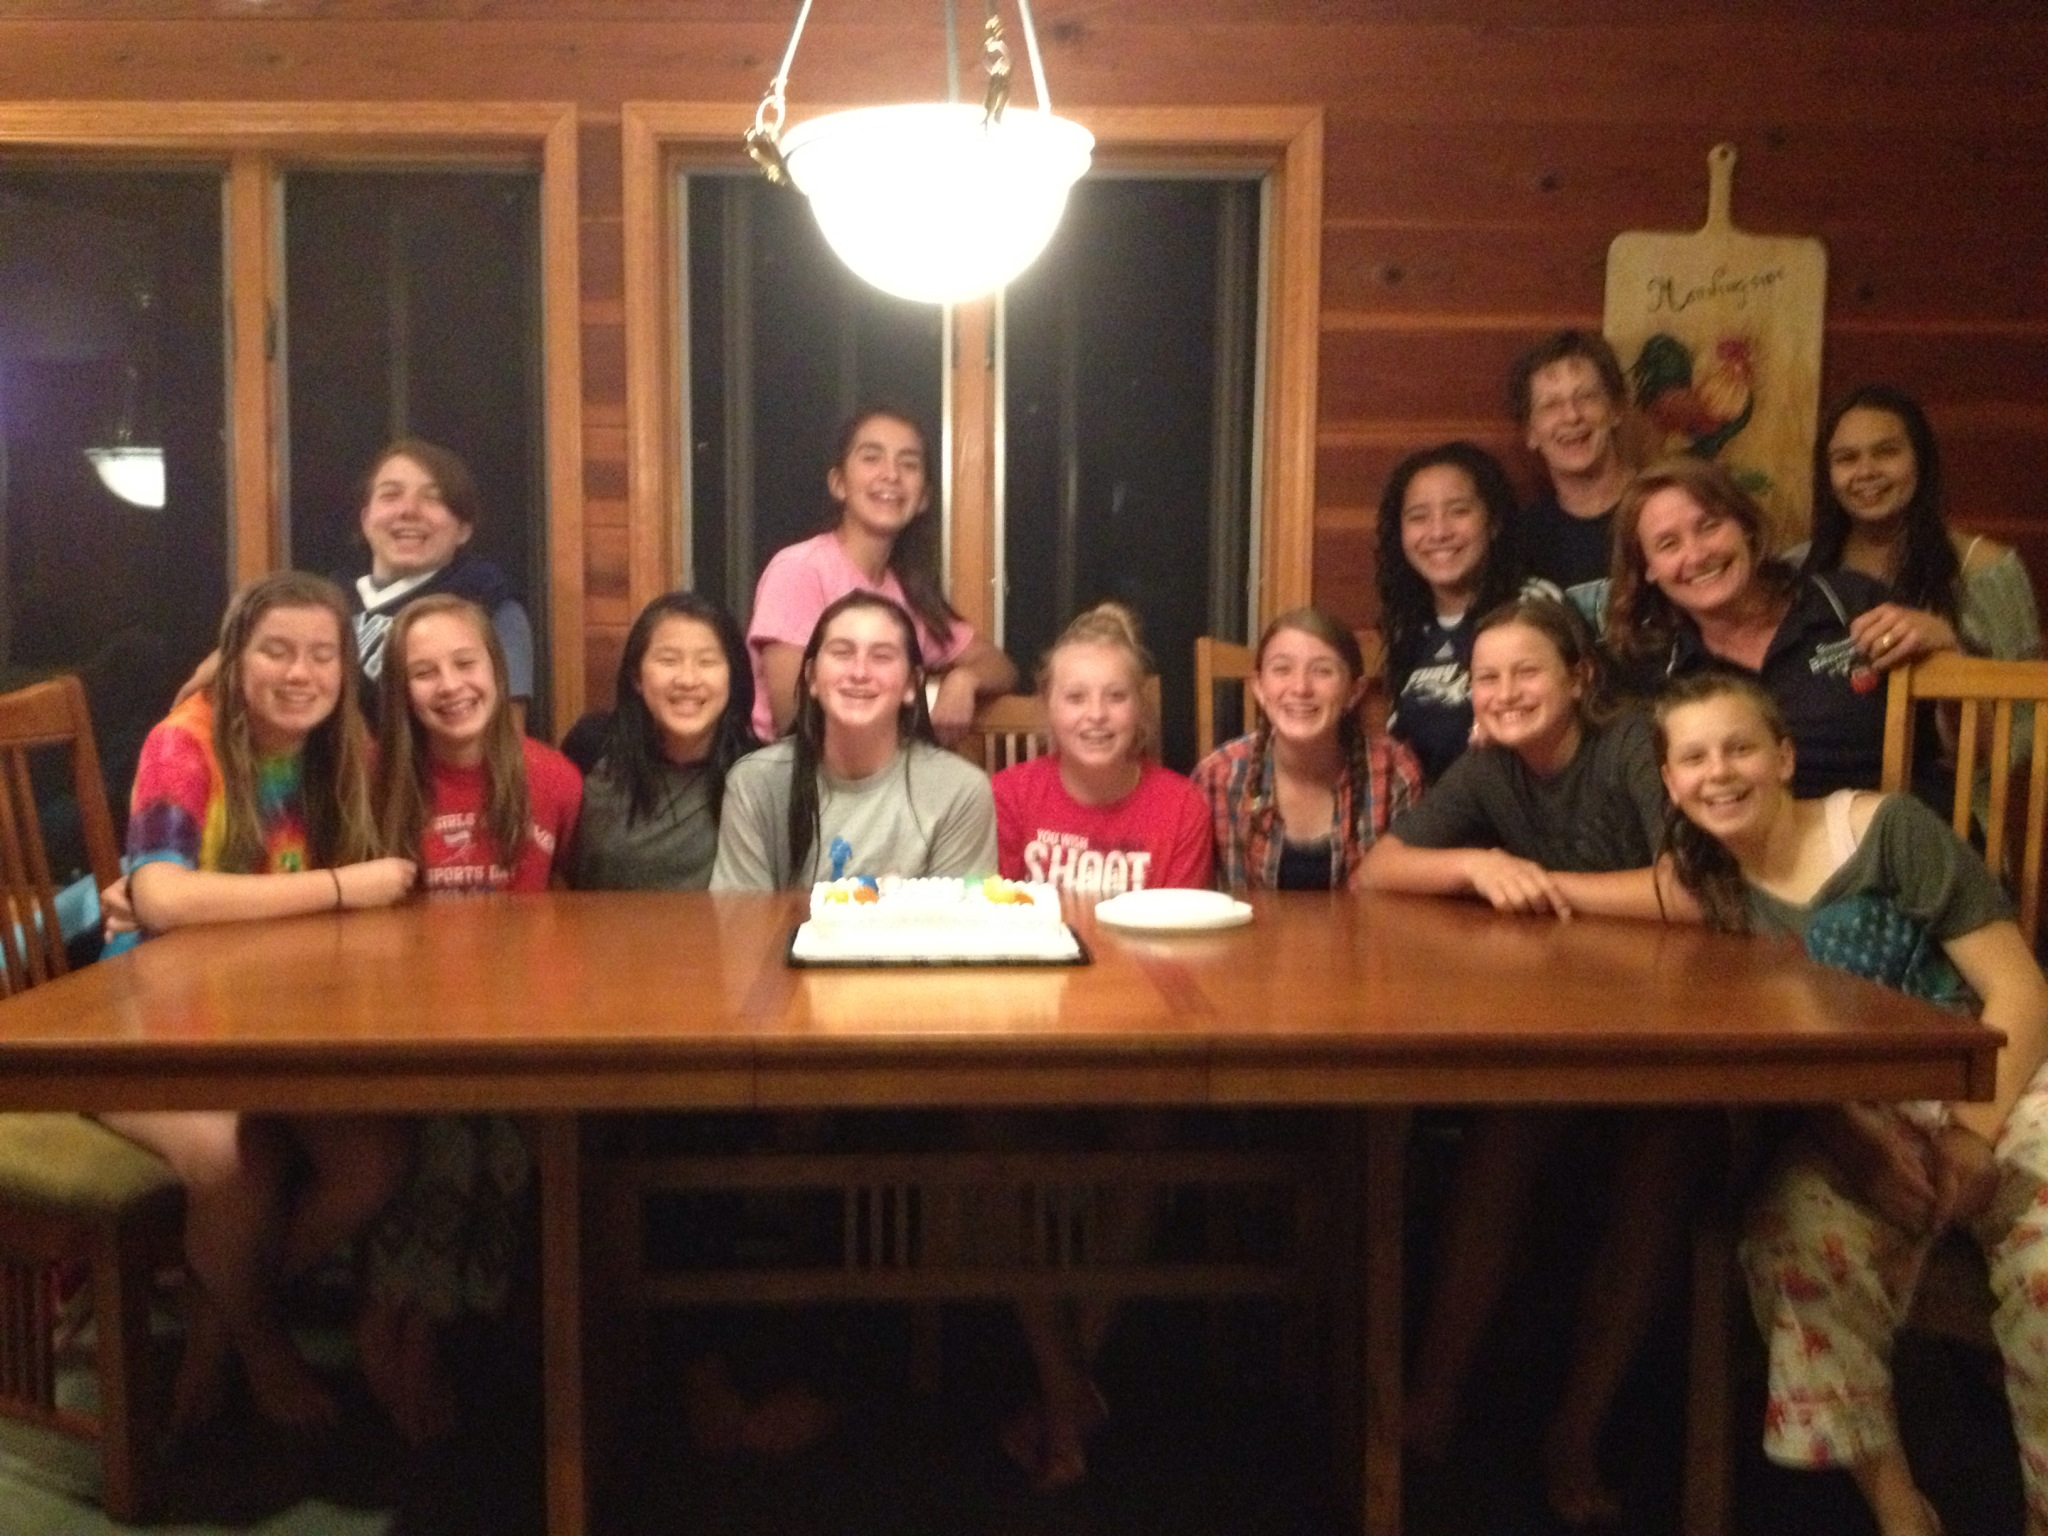 Yosemite Badgers Girls Basketball in Tahoe stayed together in the home of good friends  - photo by Stacey Montalto 2014